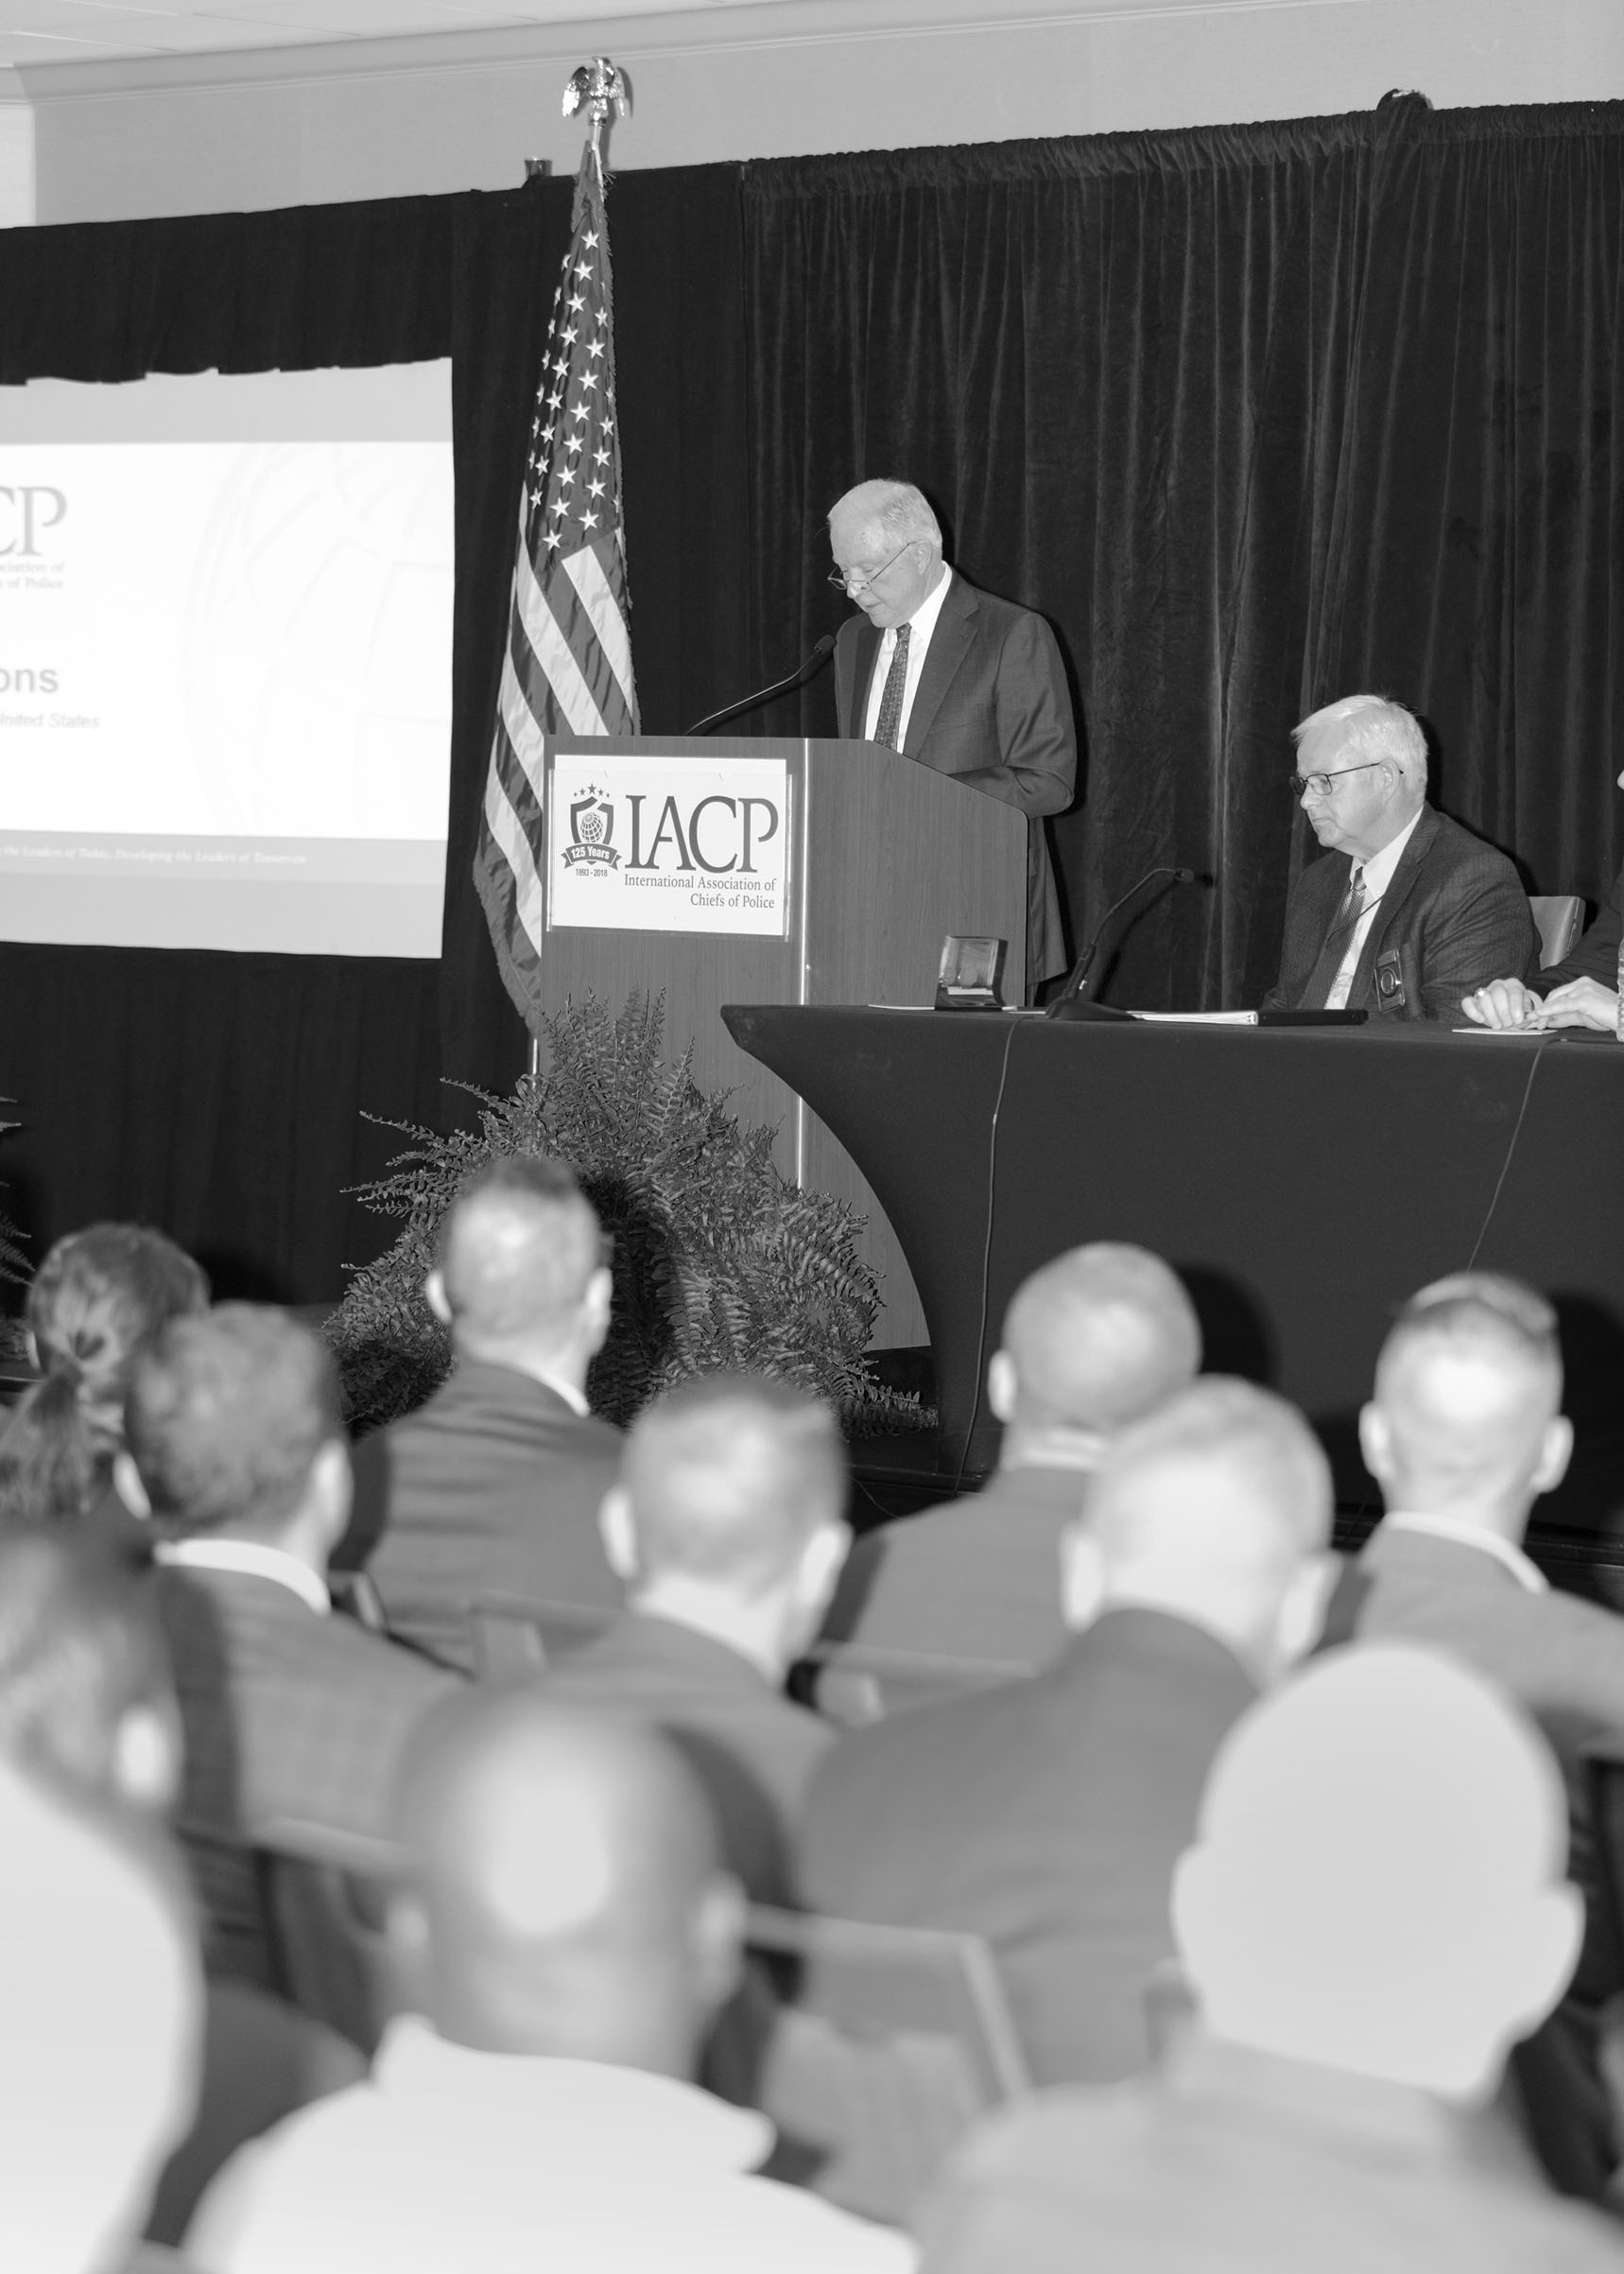 Sessions delivering a speech to police chiefs in Nashville